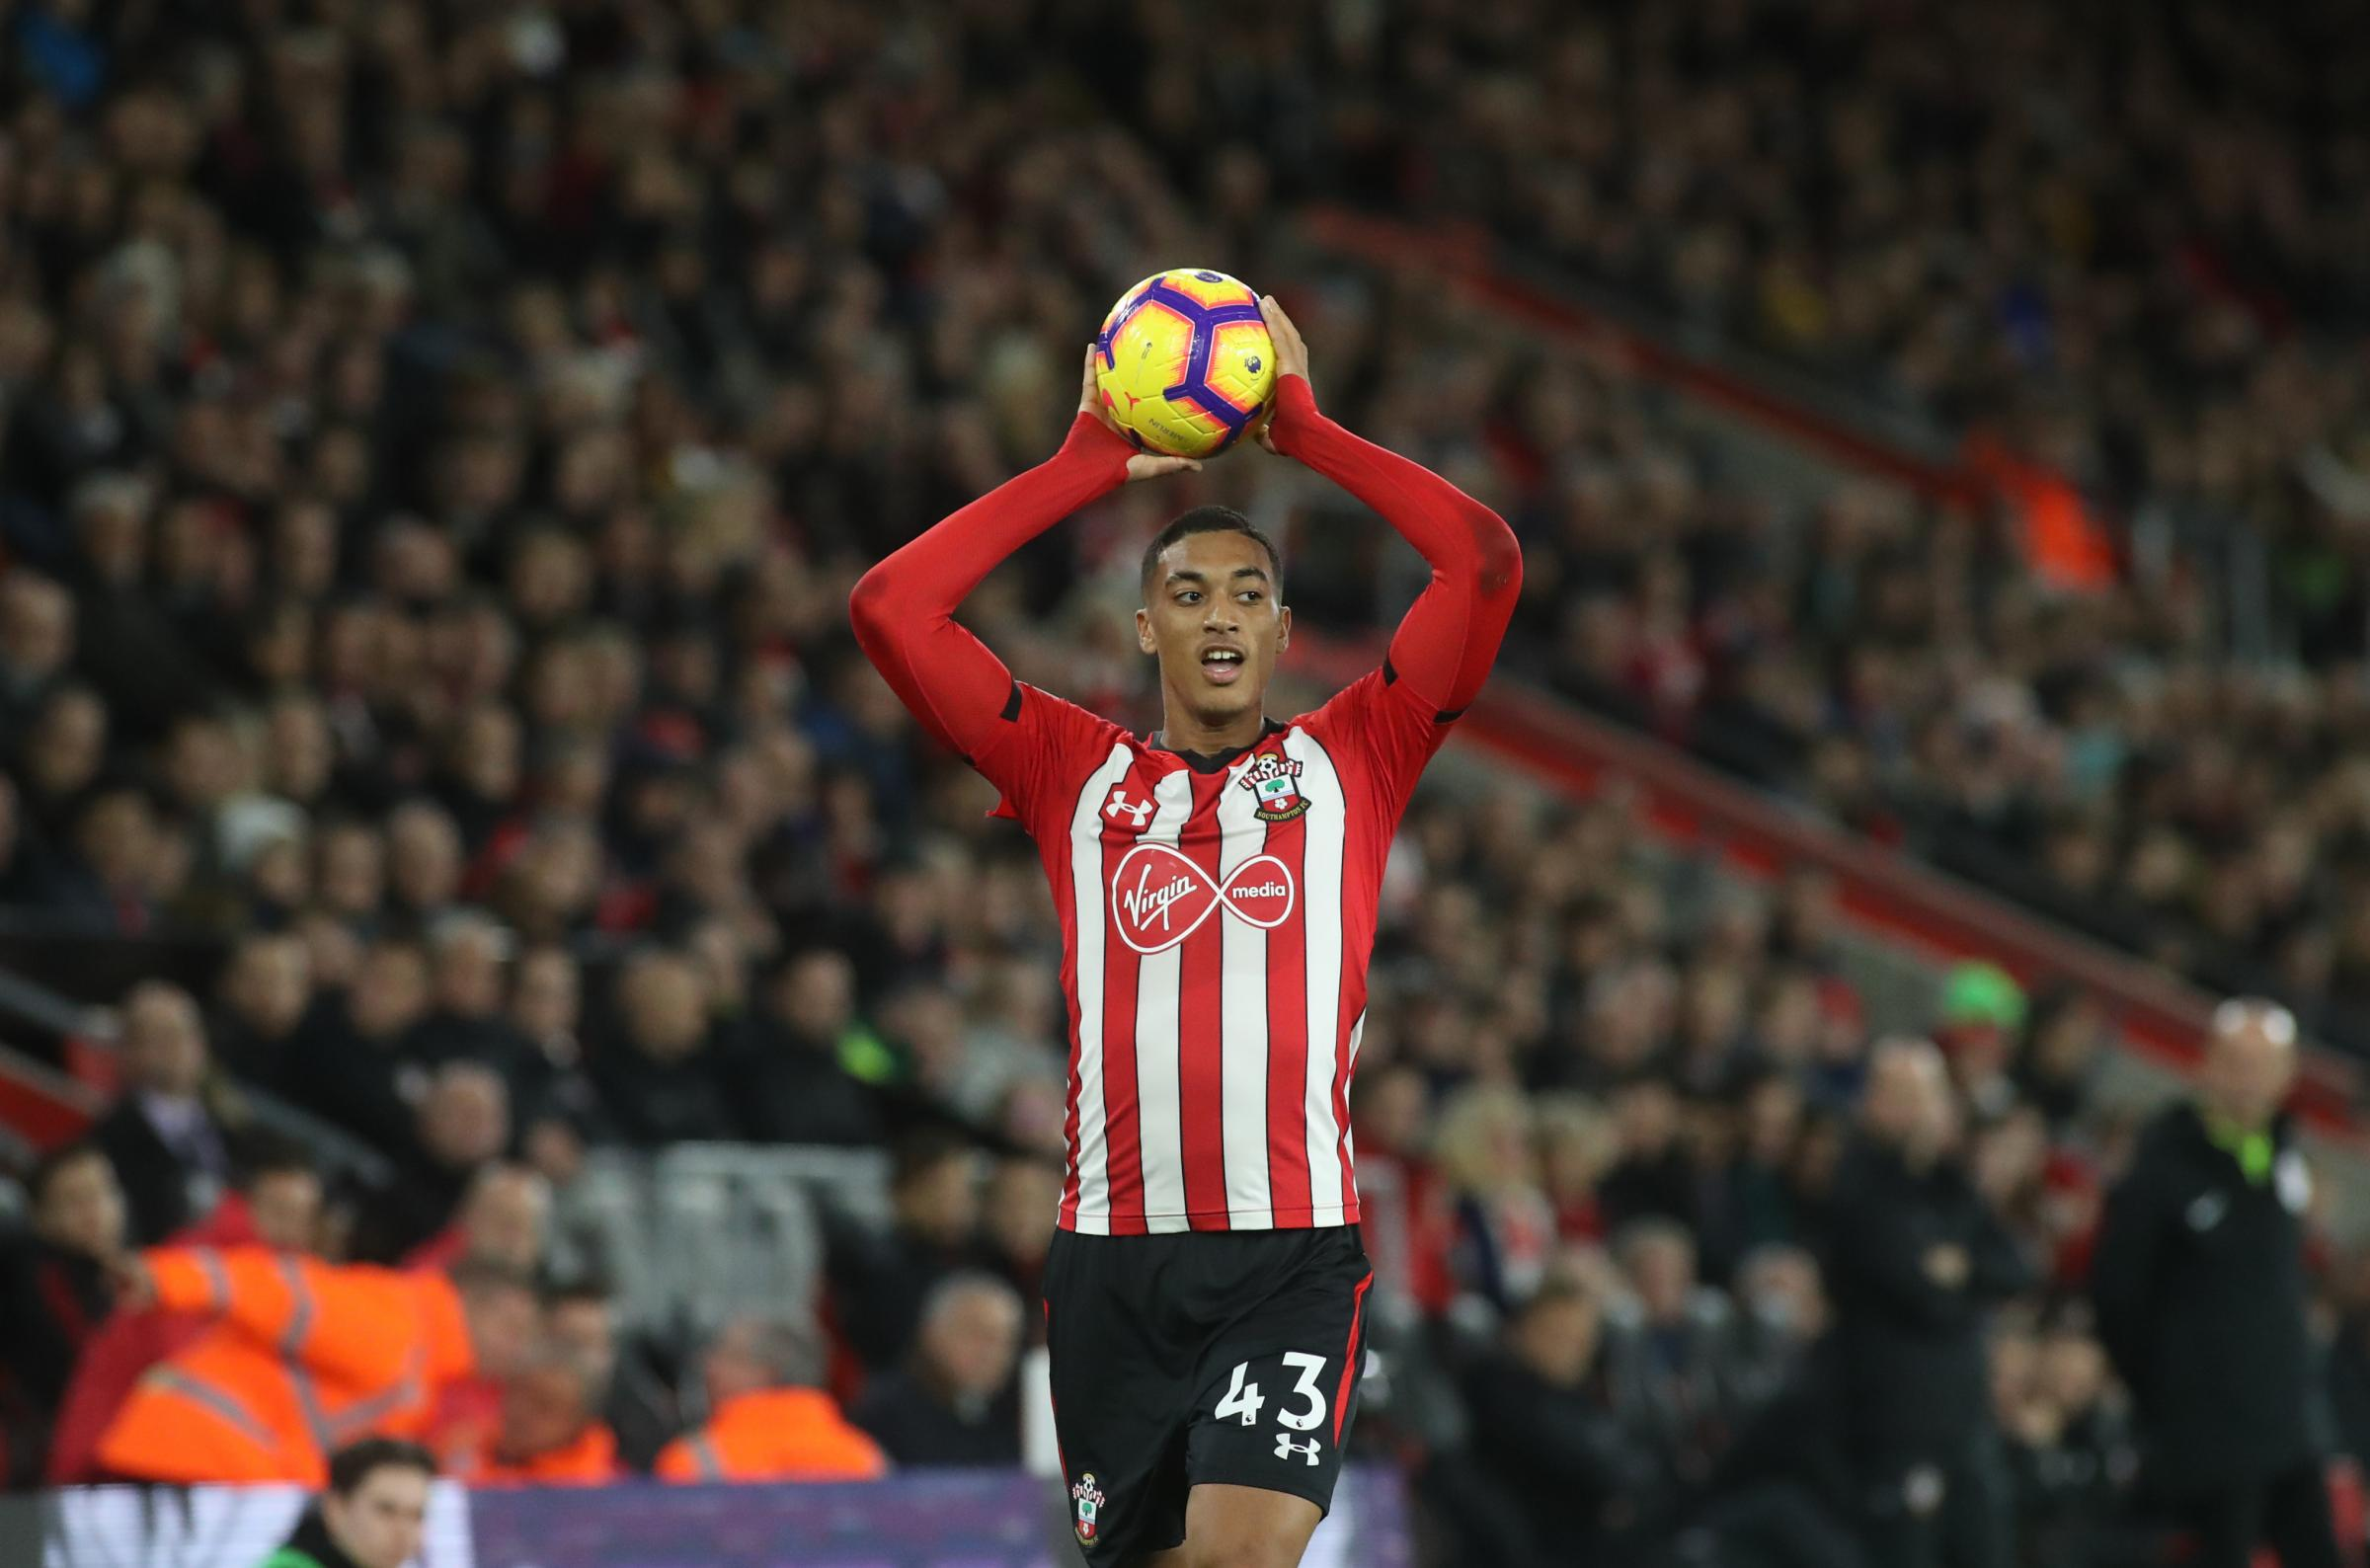 Valery is one of the Premier League's top teens